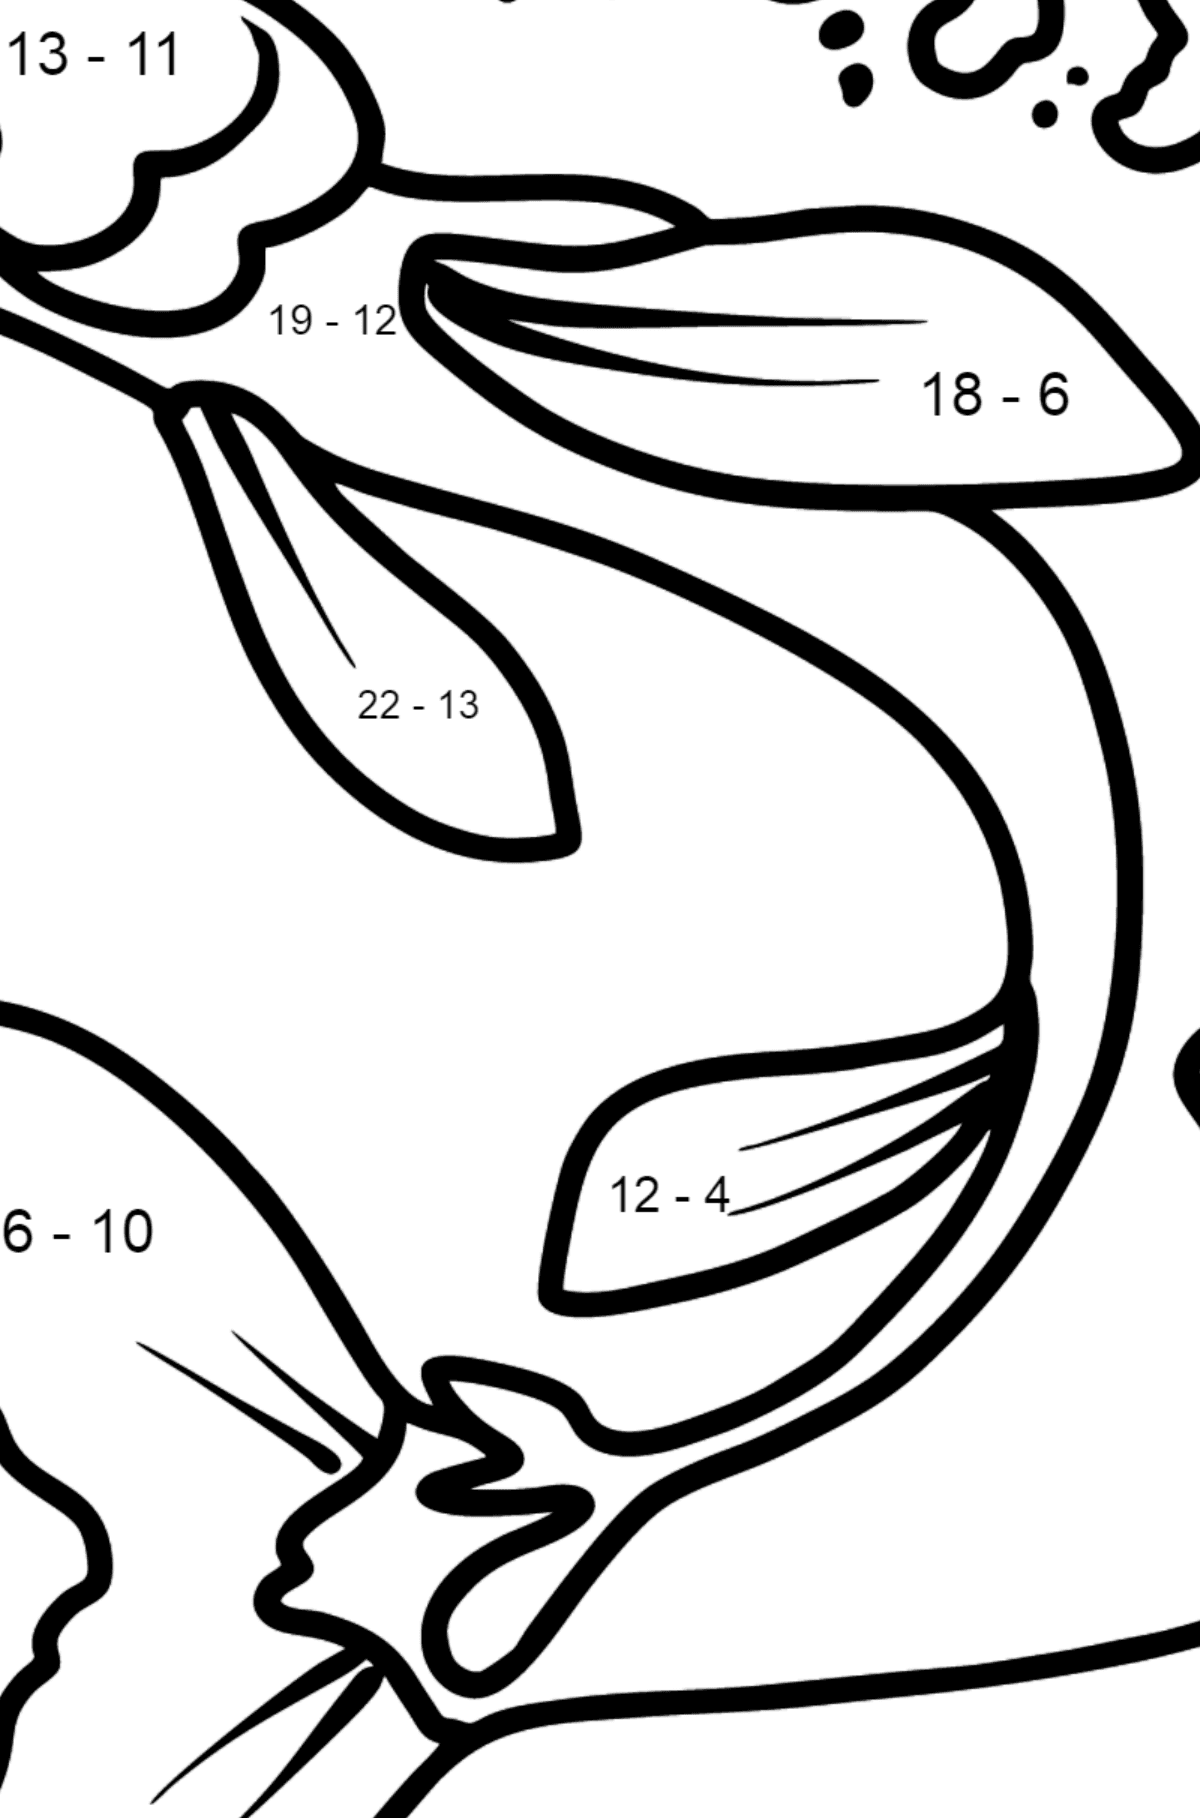 Pike coloring page - Math Coloring - Subtraction for Kids